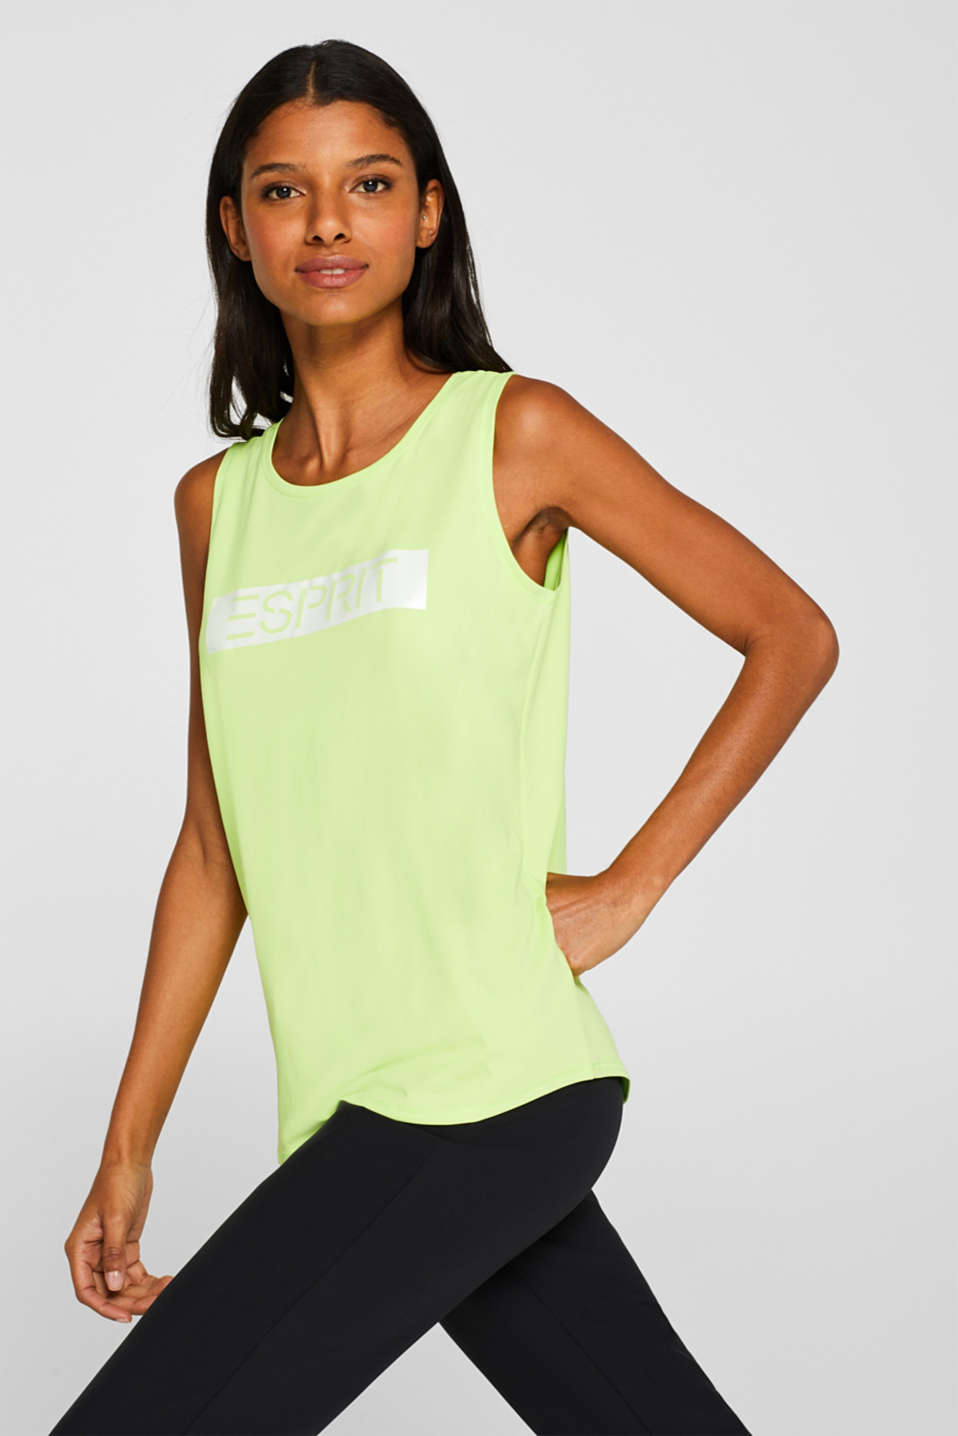 Esprit - Stretch top with a print and racing stripes, E-DRY